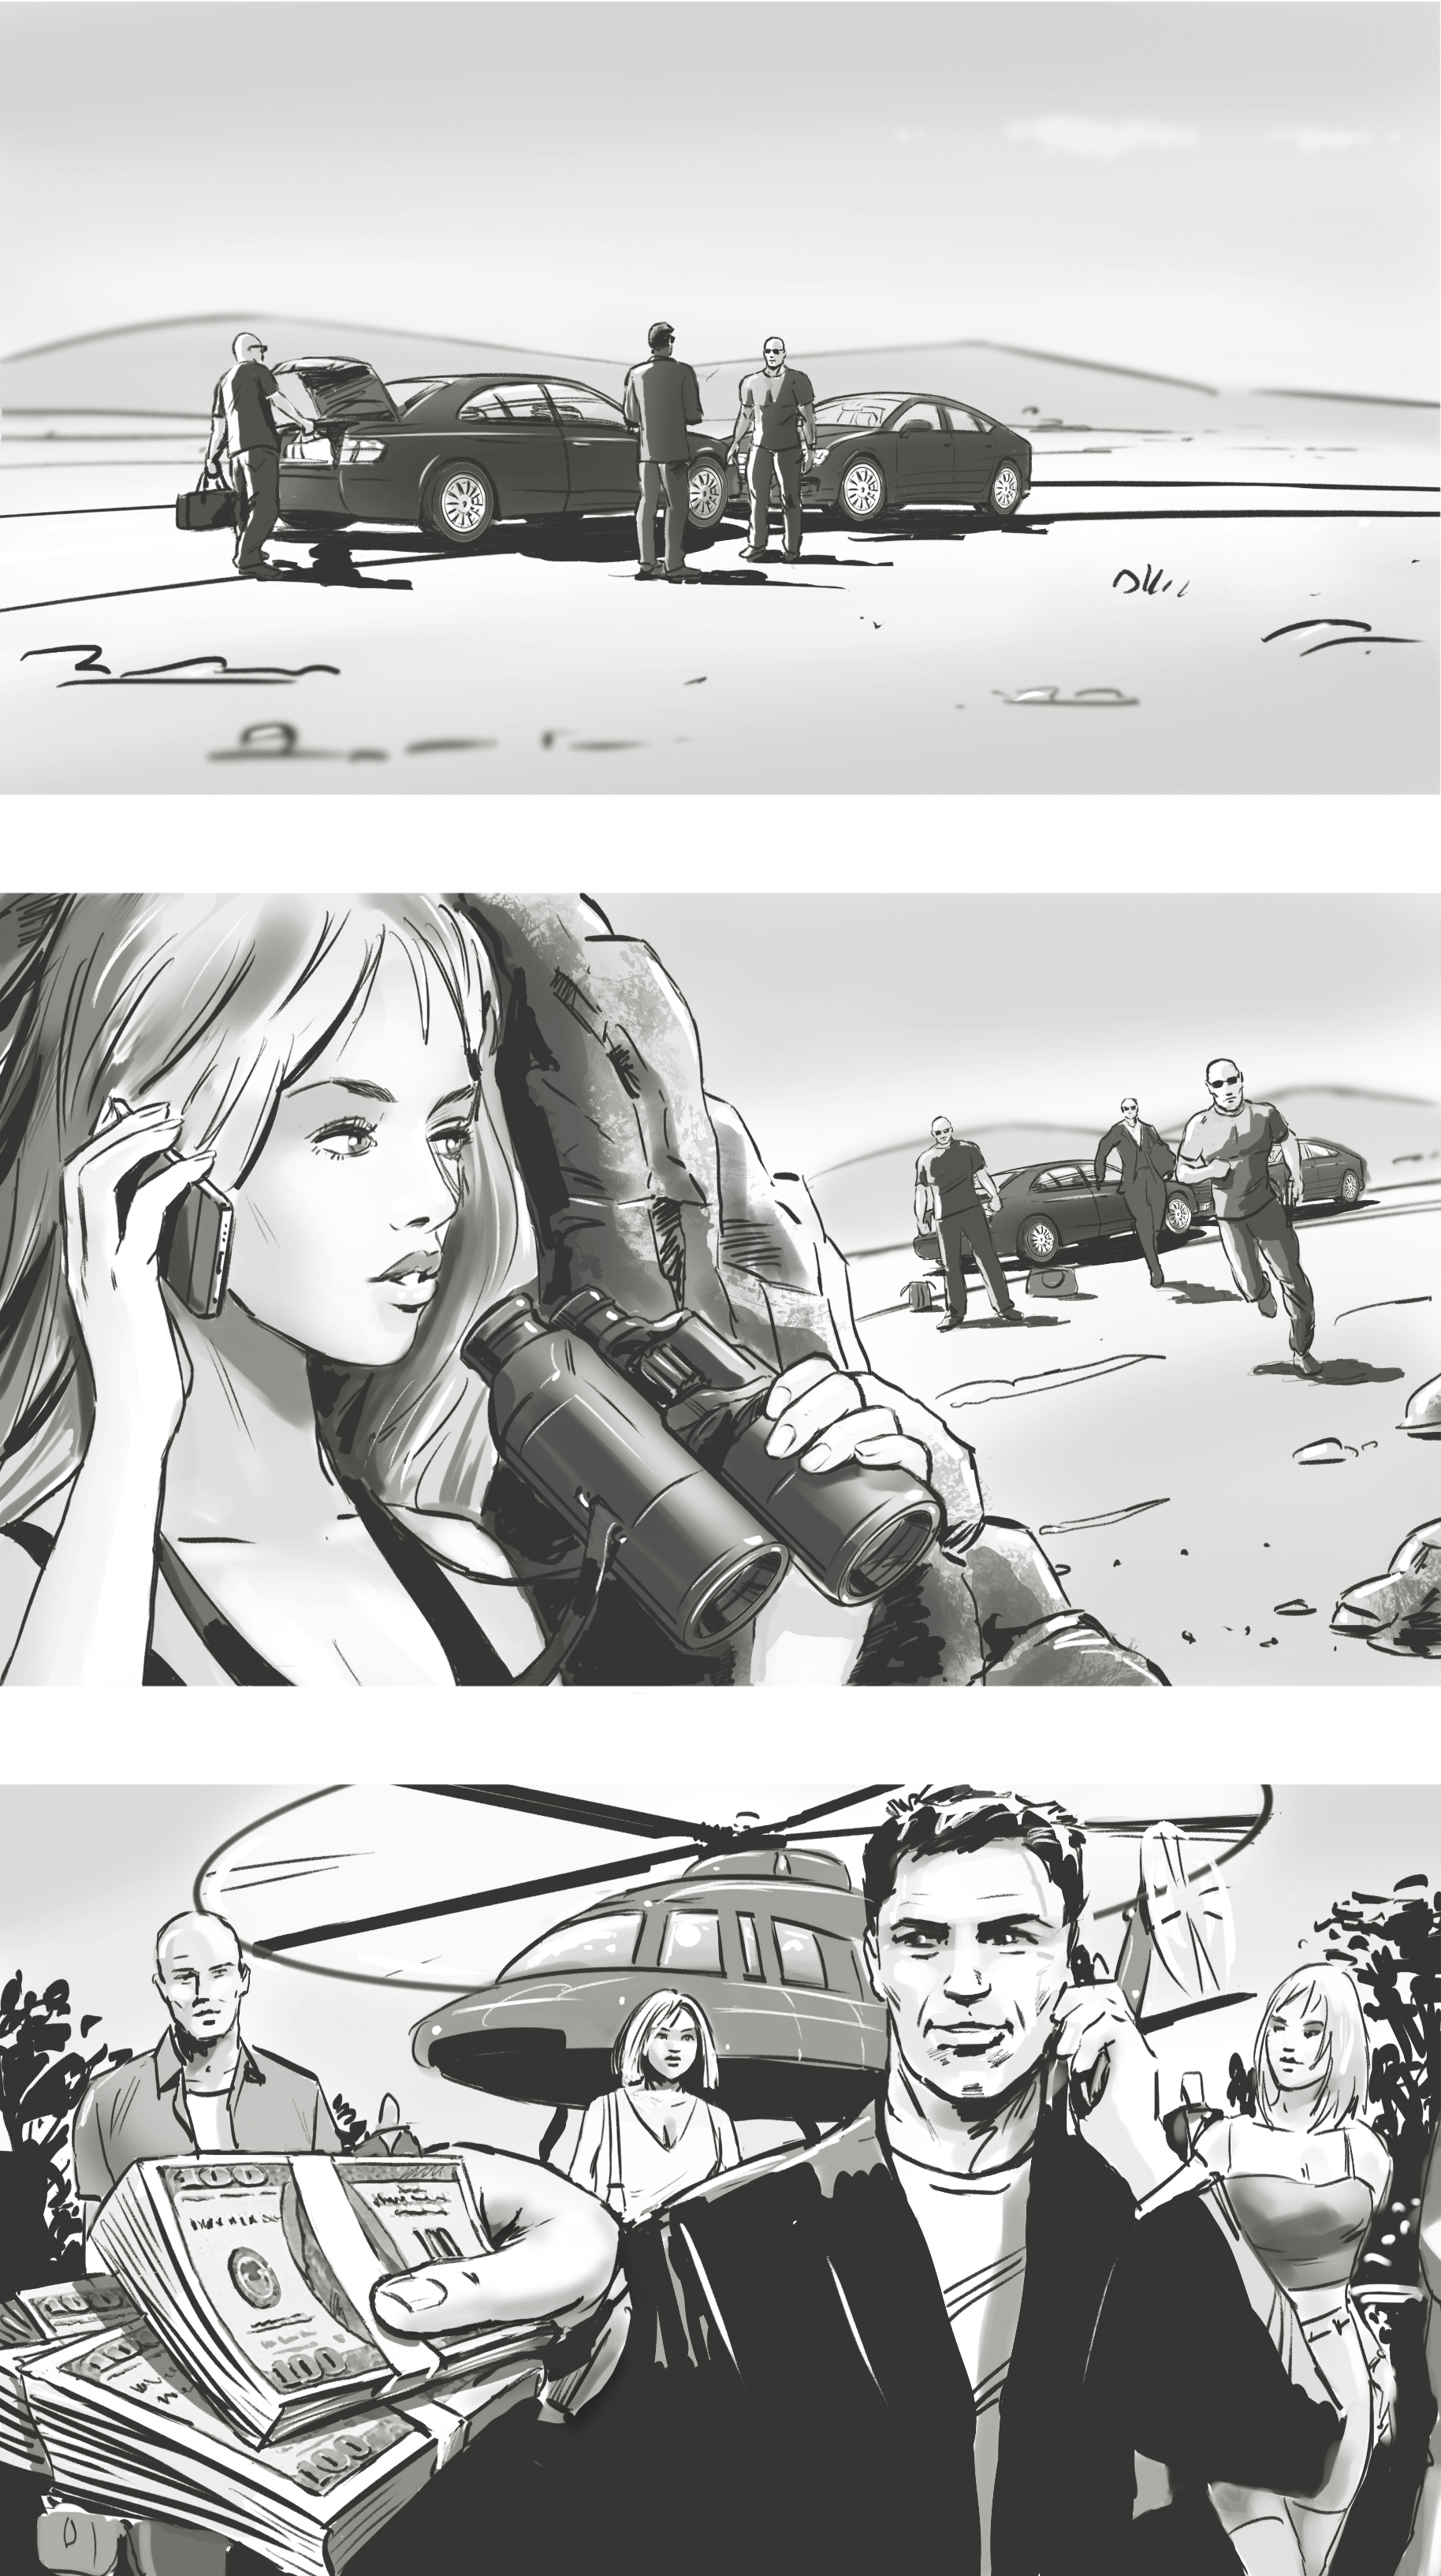 Storyboard frames for a movie concept.